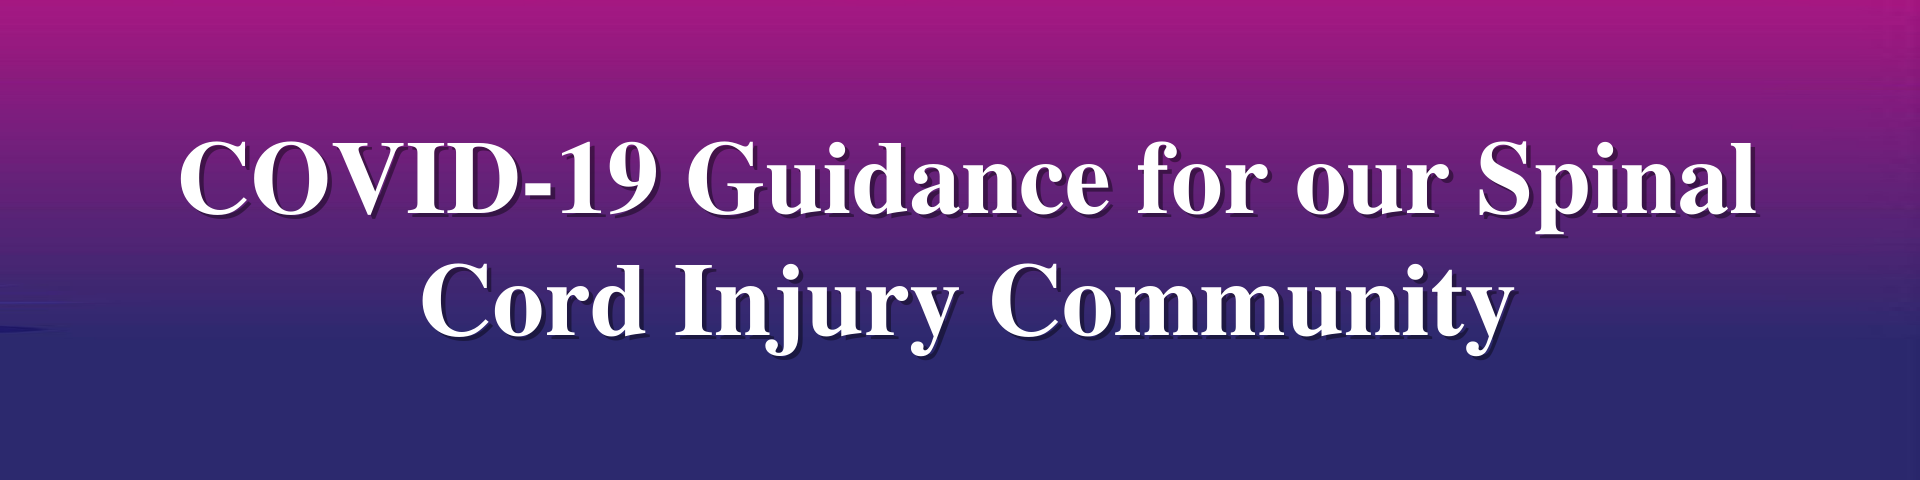 Covid-19 Guidance for our Spinal Cord Injury Community